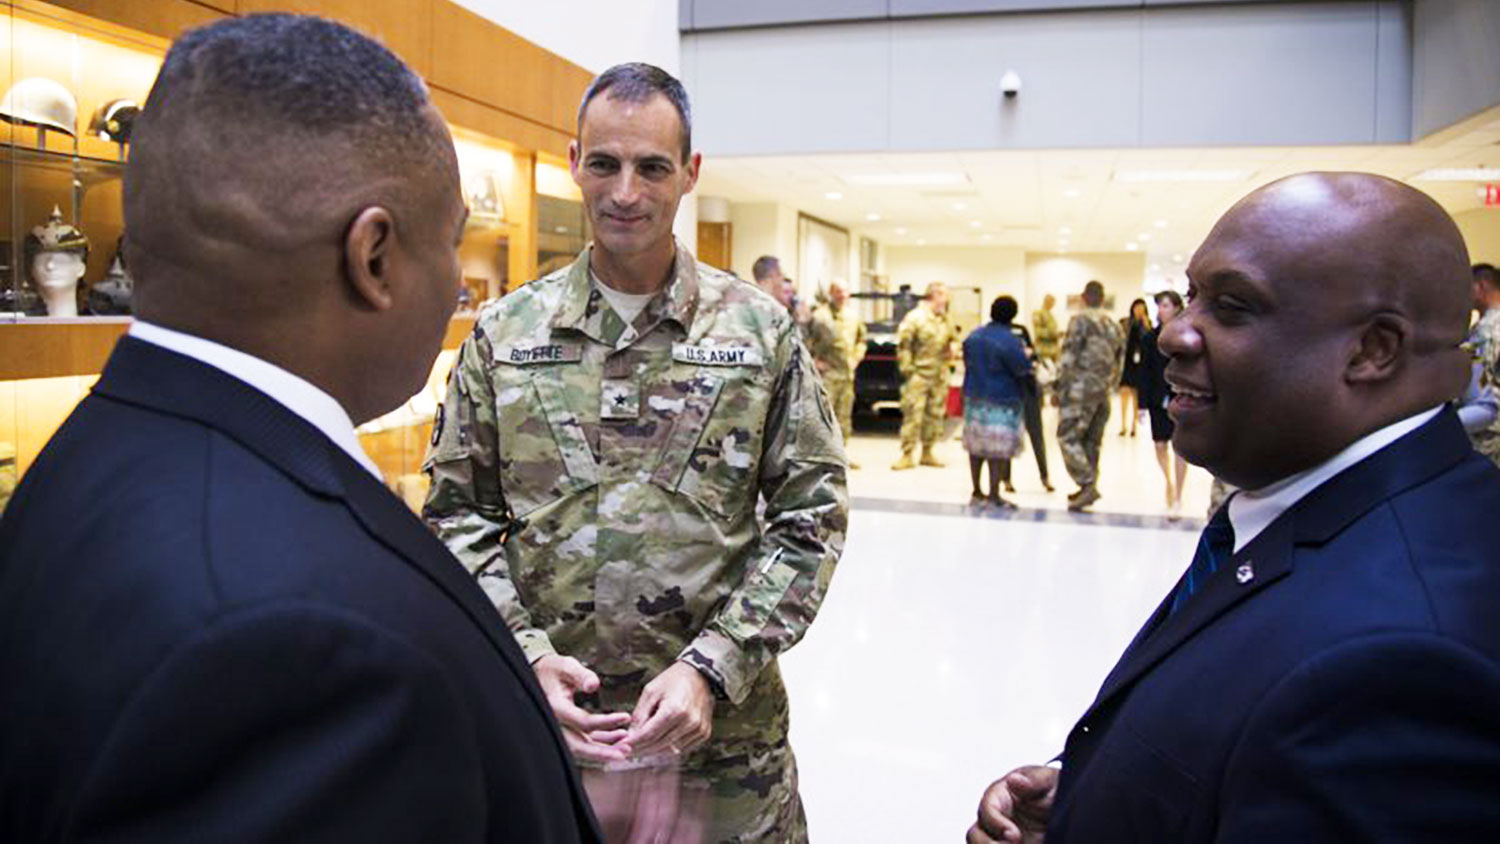 man in National Guard uniform talking with two other men